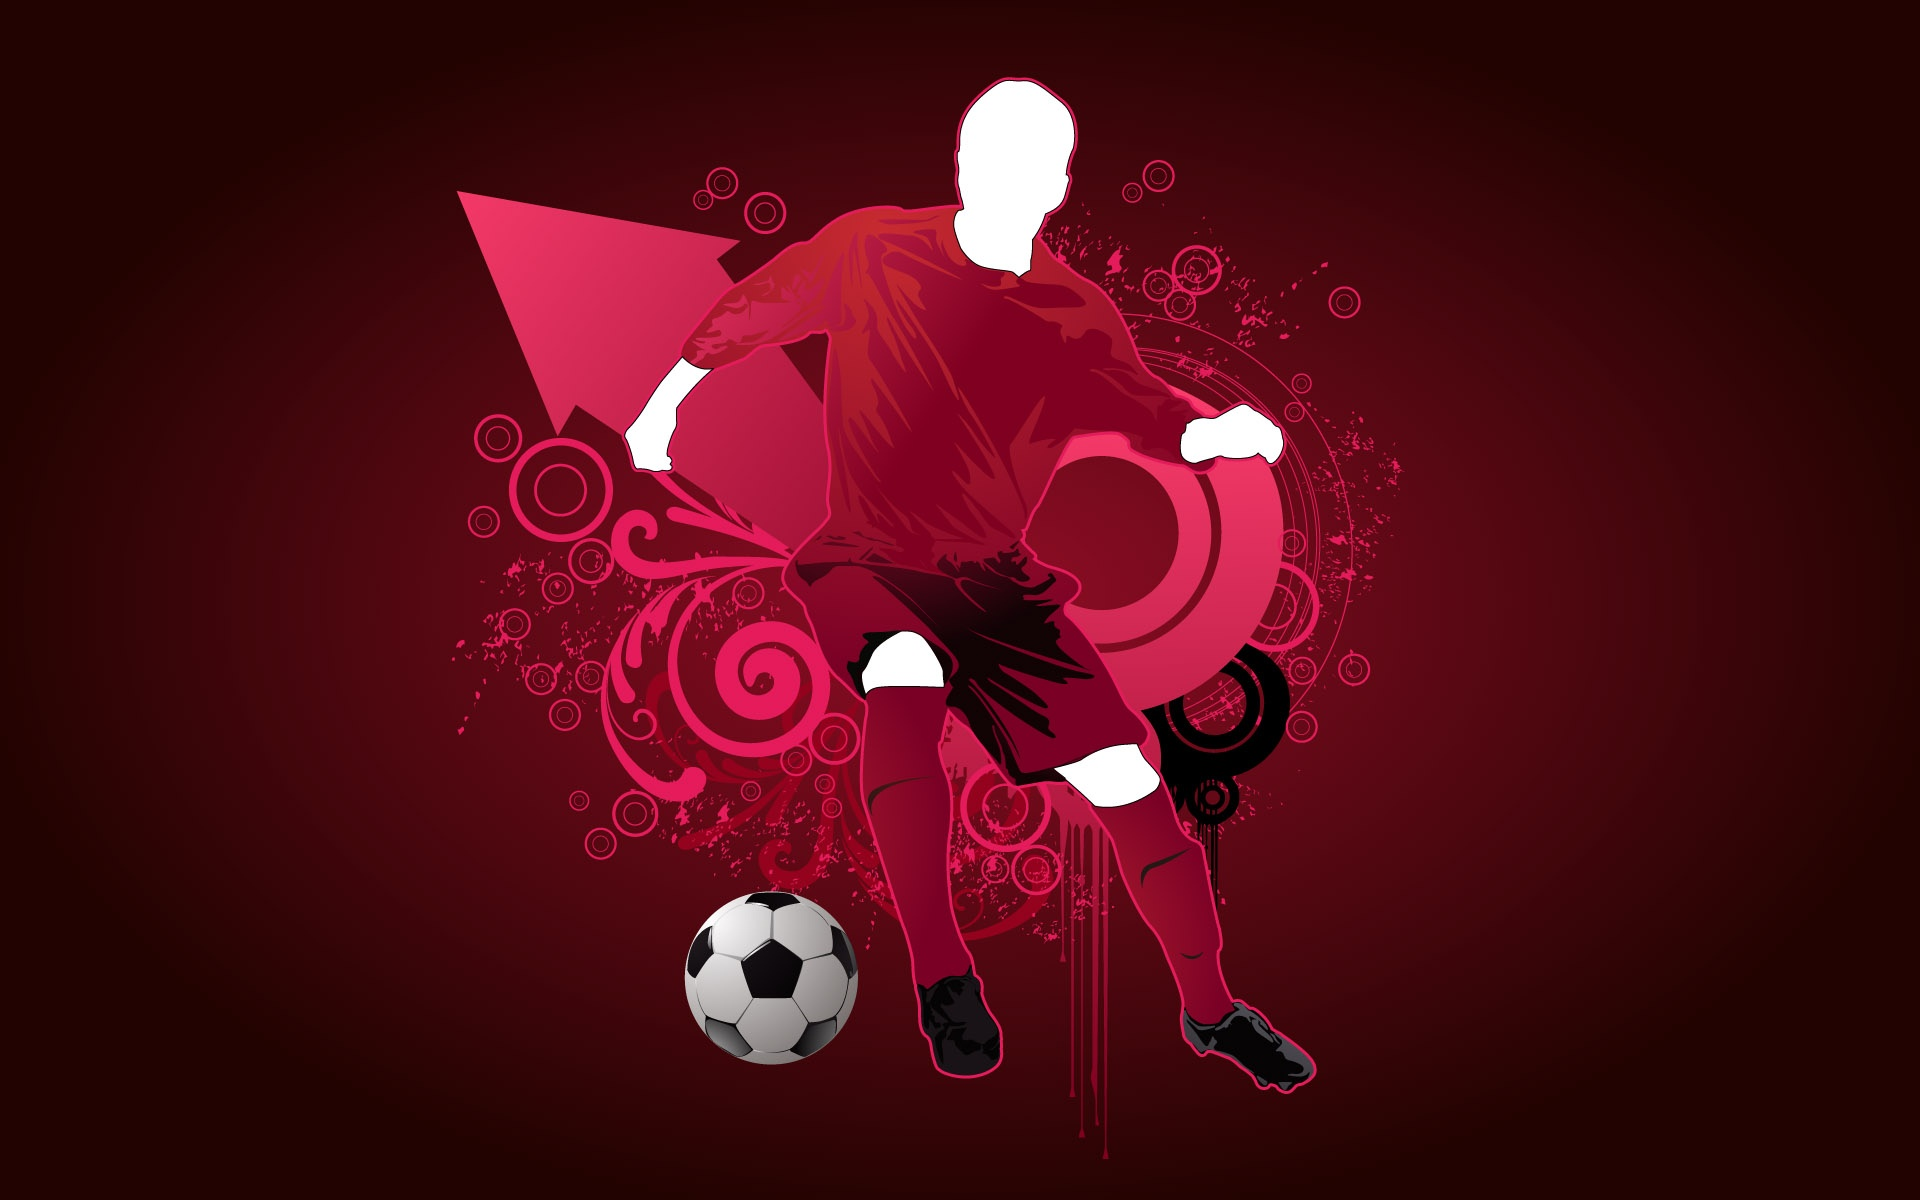 Football Vector HD Wallpapers In Jpg Format For Free Download